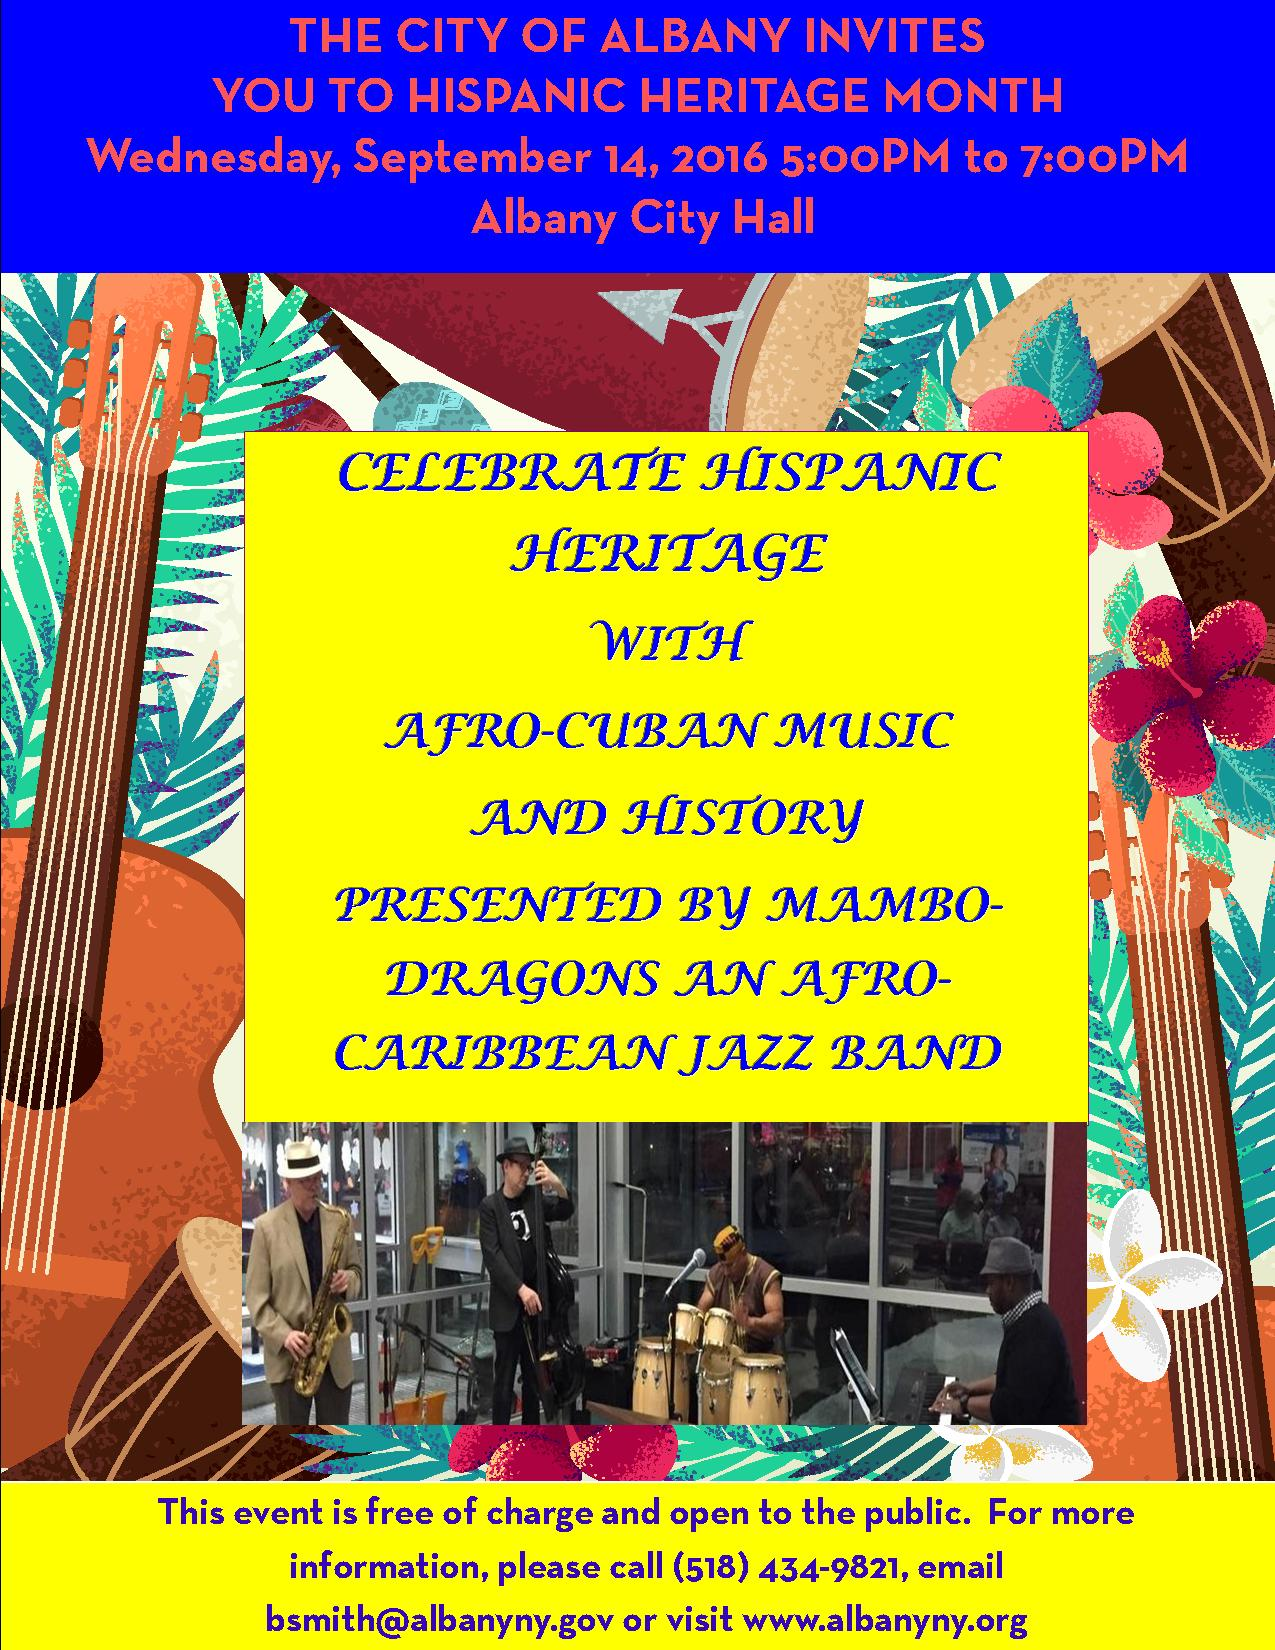 The City Of Albany Invites You To Hispanic Heritage Month